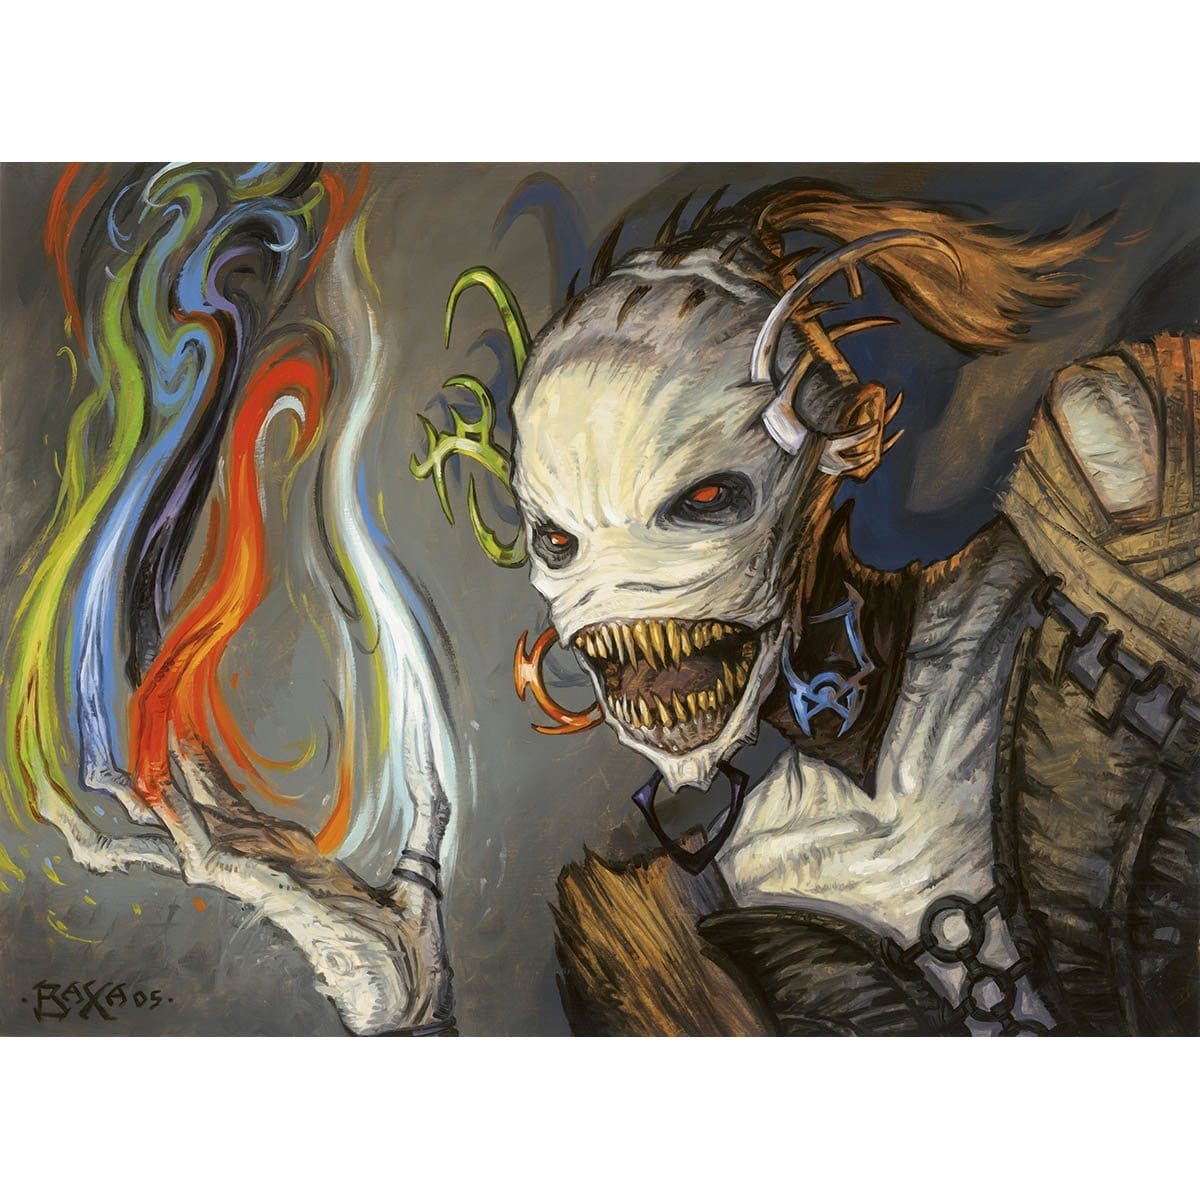 Vesper Ghoul Print - Print - Original Magic Art - Accessories for Magic the Gathering and other card games